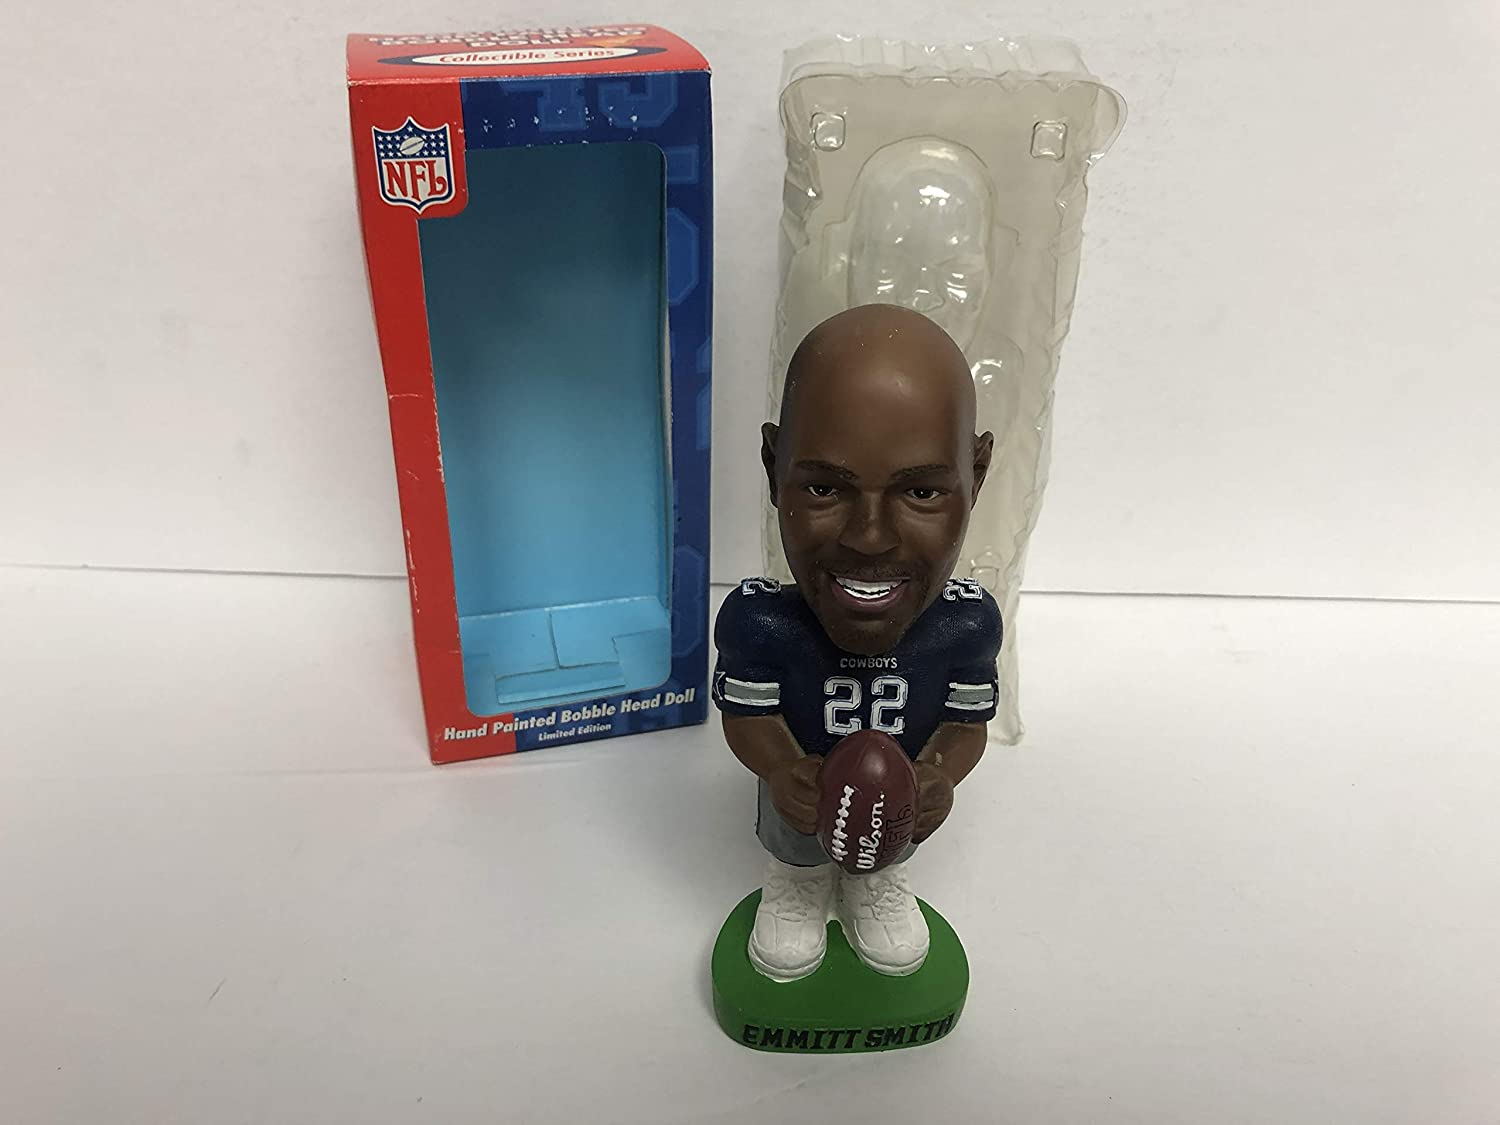 Emmitt Smith Dallas Cowboys Legend NFL Limited Edtion Bobblehead holding Football